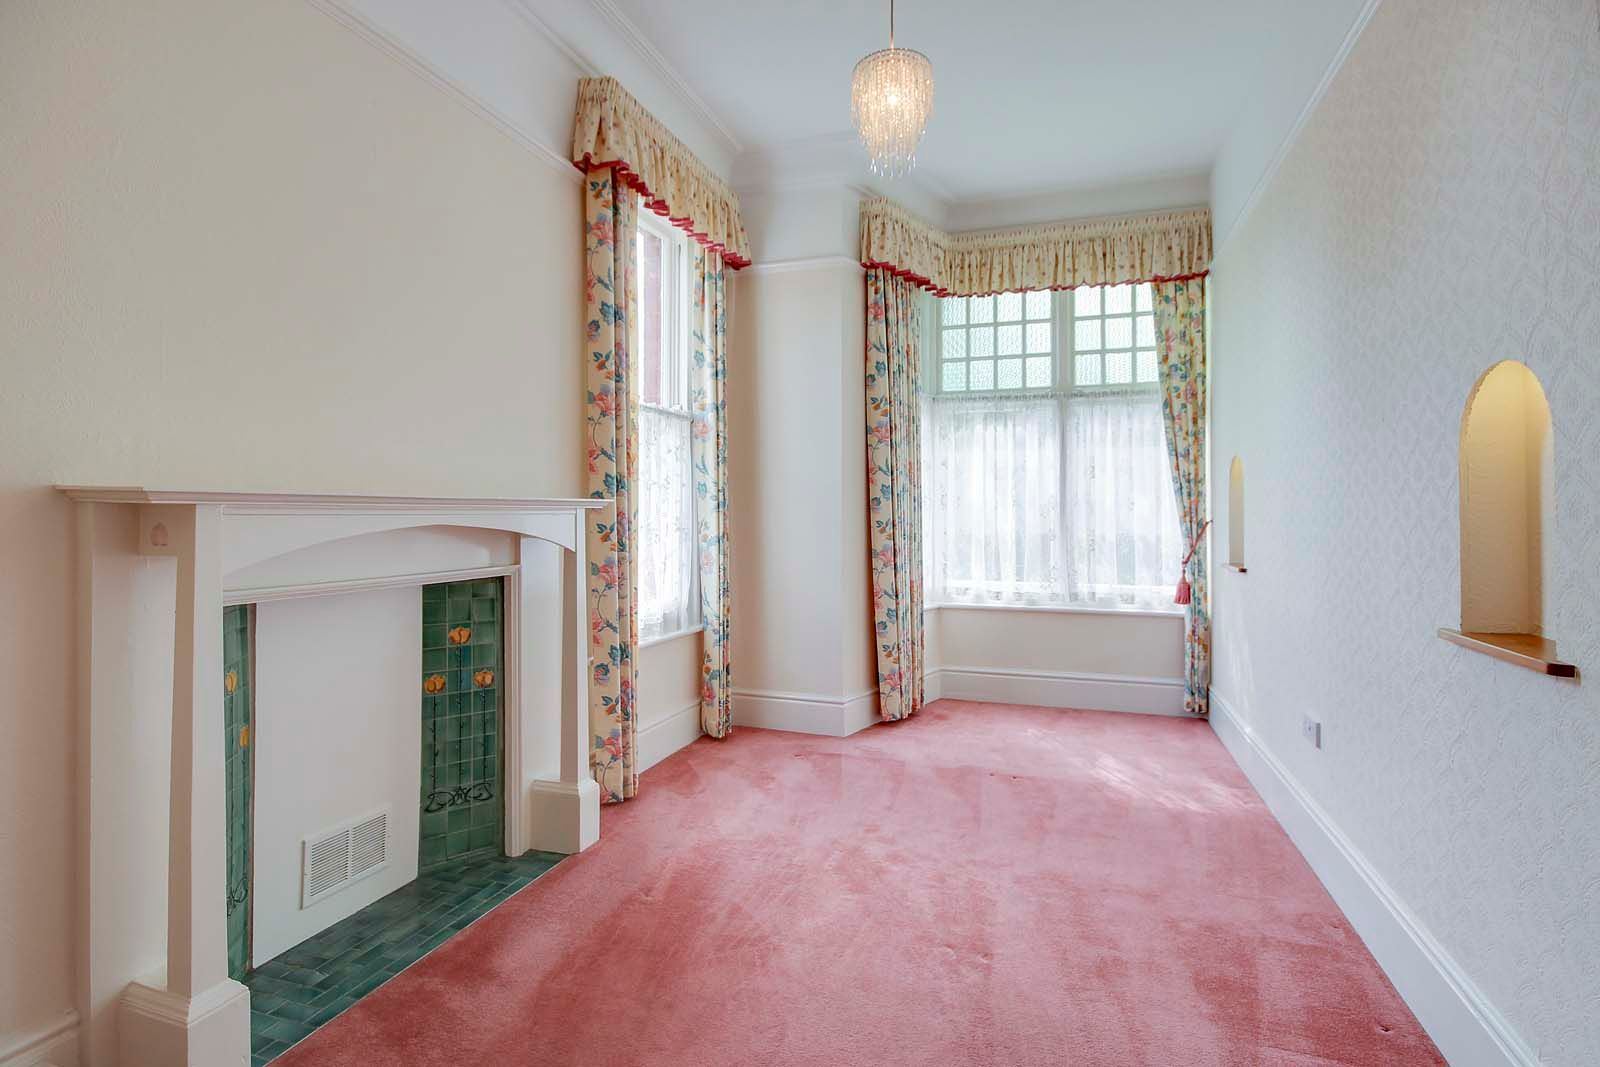 2 bed Apartment to rent in Worthing - Bedroom 1 (Property Image 4)